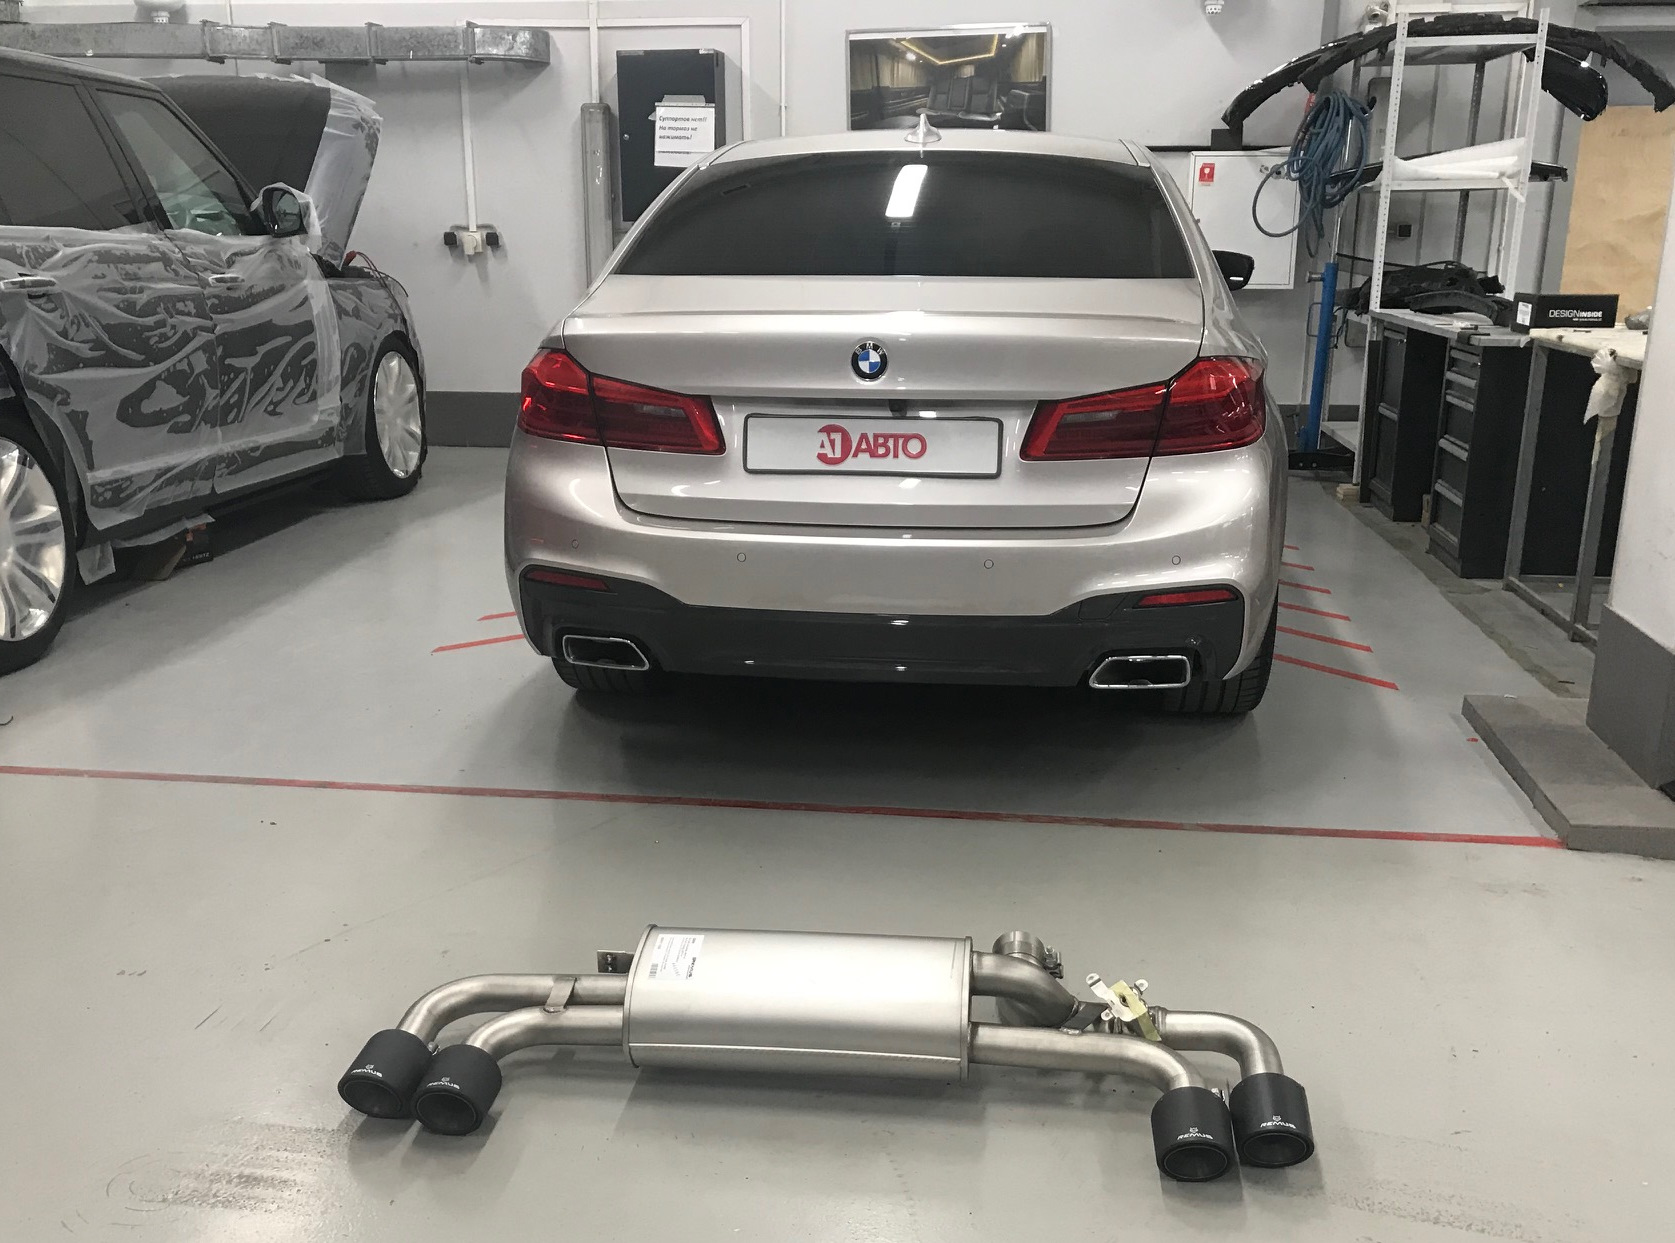 Best Tune And Exhaust For G30 540i Xdrive Bmw 5 Series Forum G30